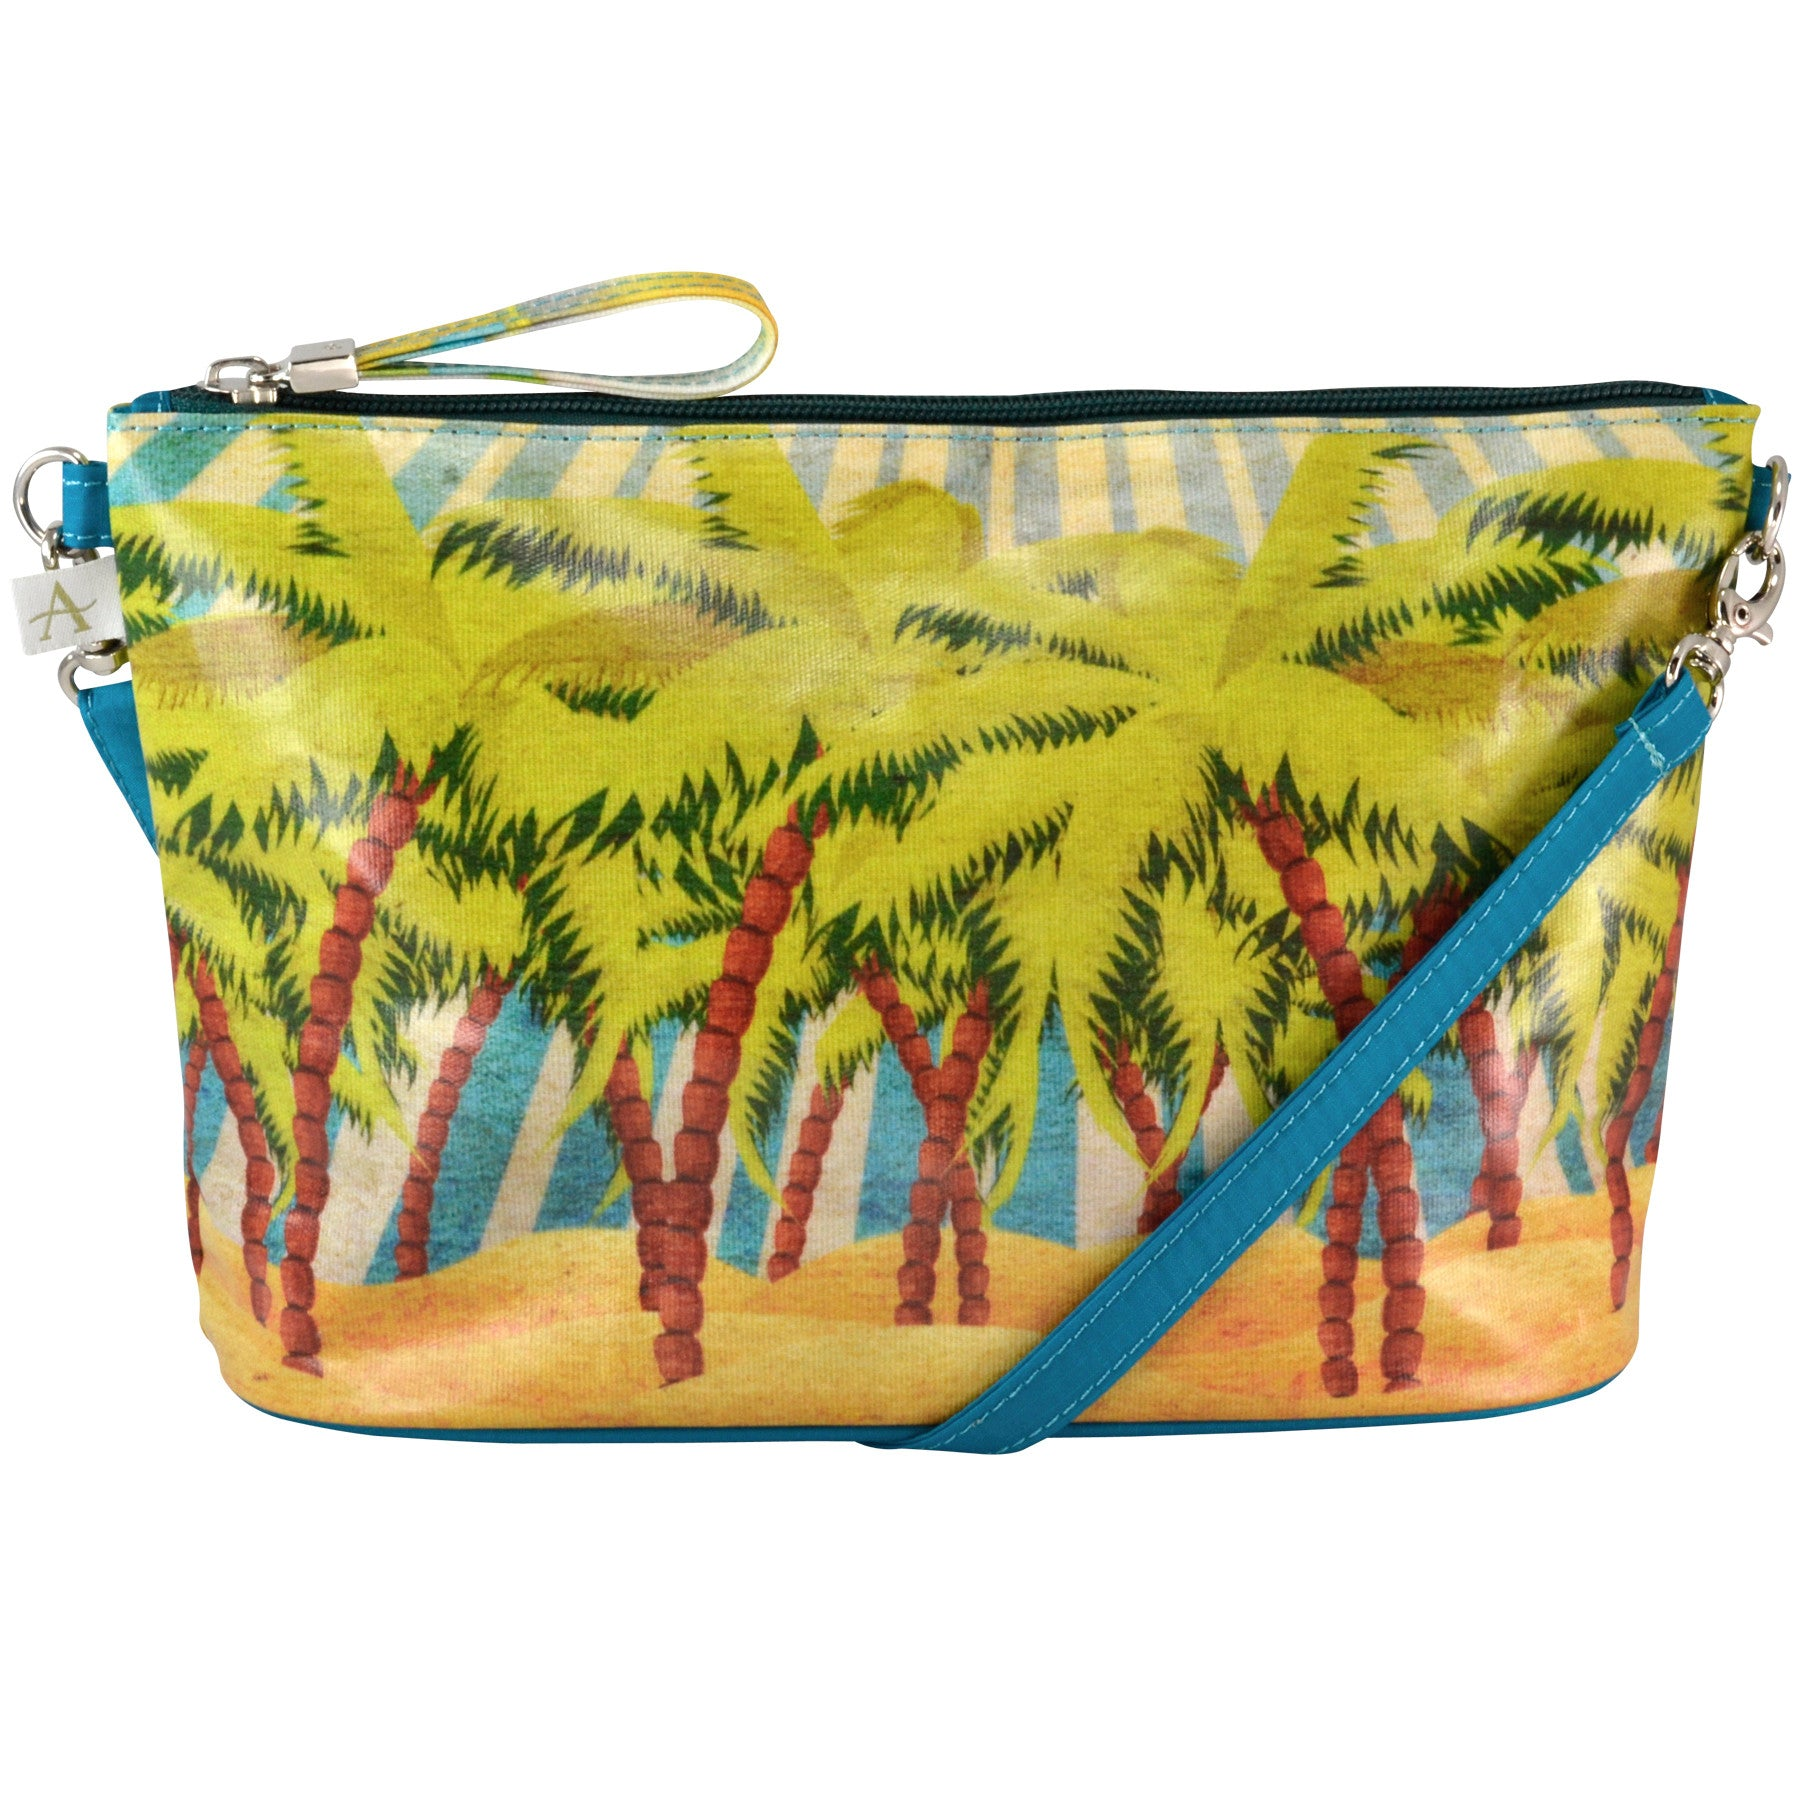 Alicia Klein small crossbody bag, Island Sun